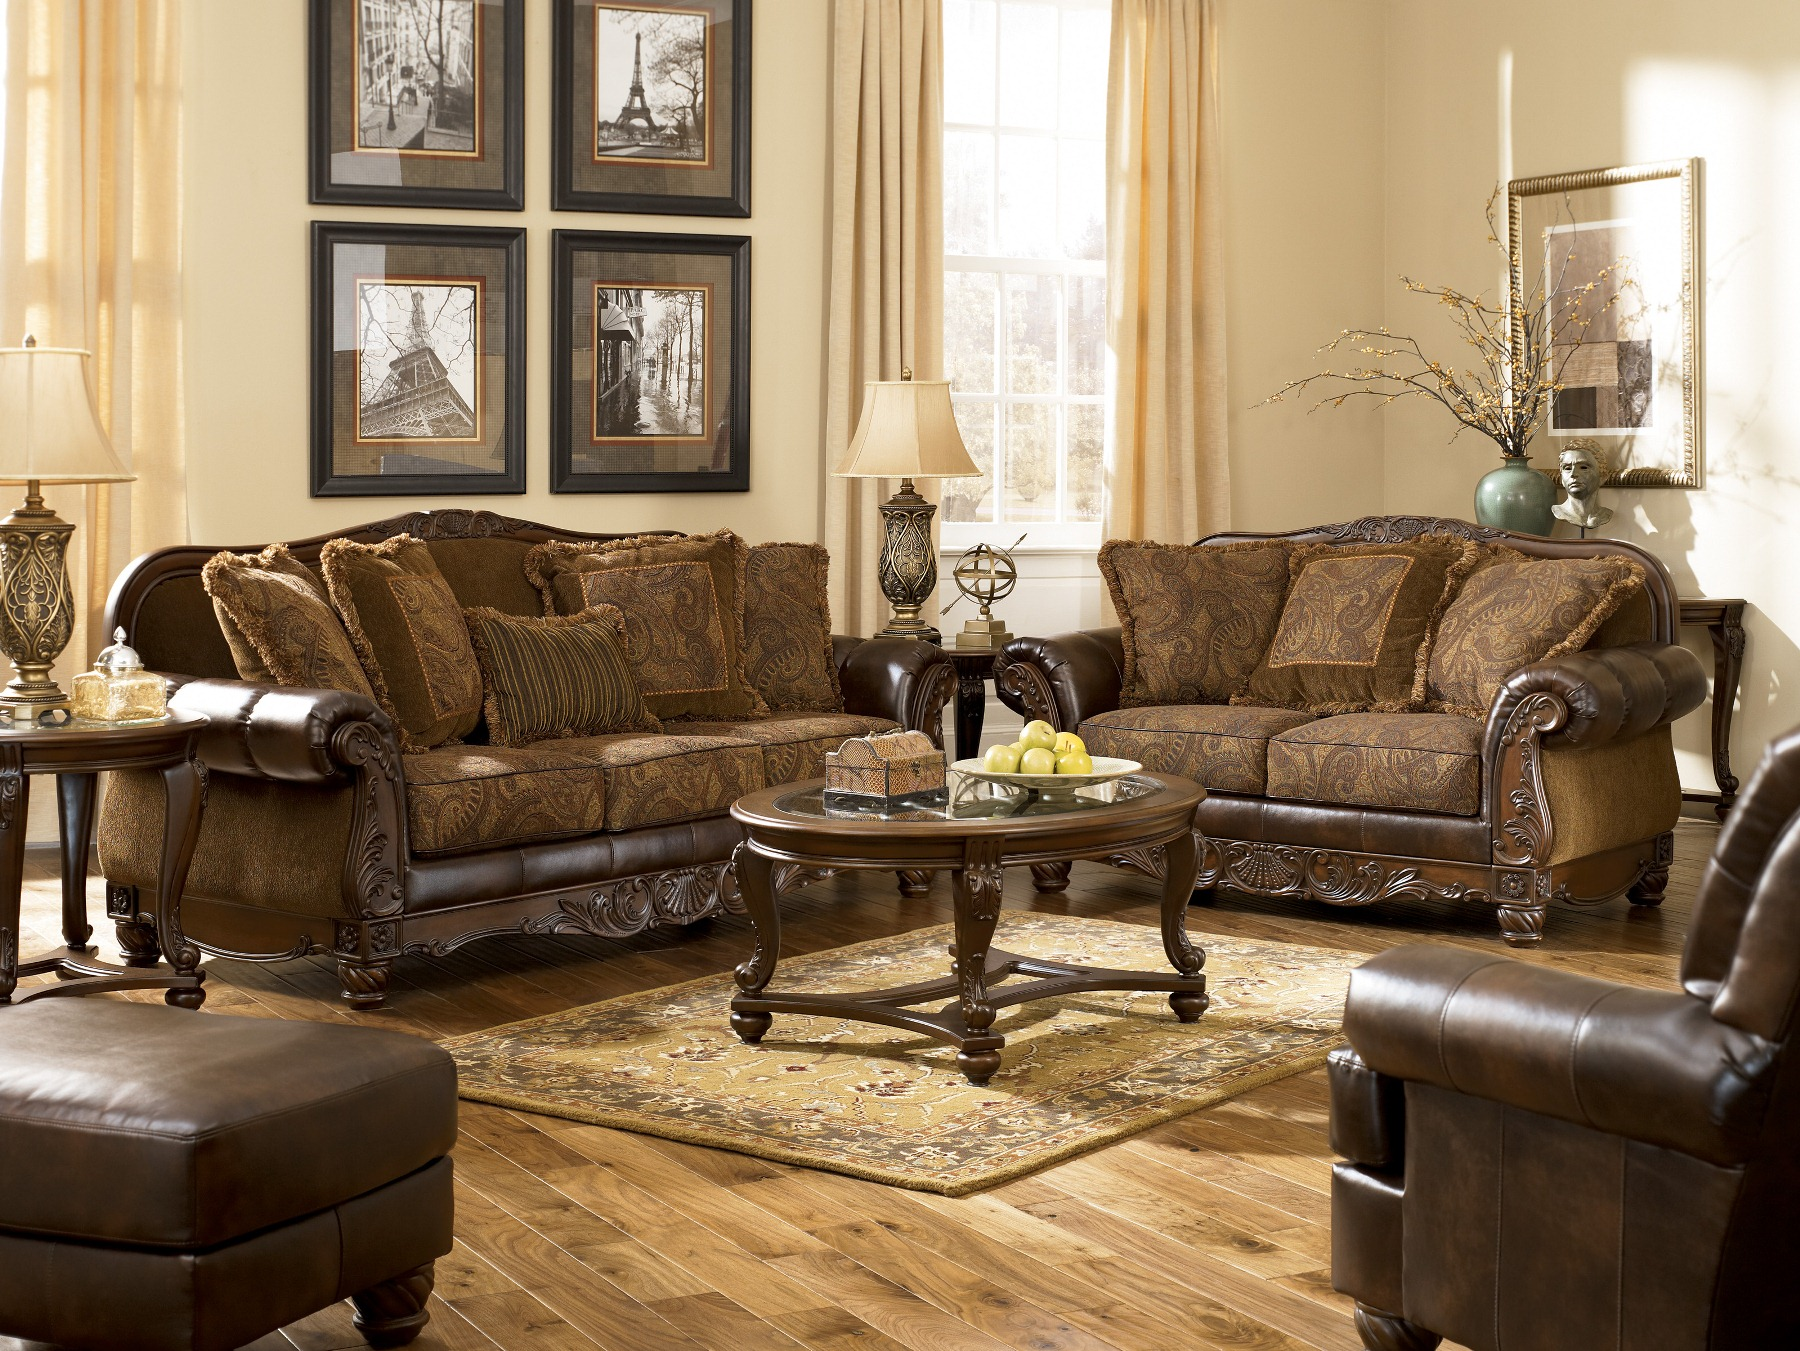 Cool Front Room Furnishings For Living Room Ideas With Front Room  Furnishings Outlet Design